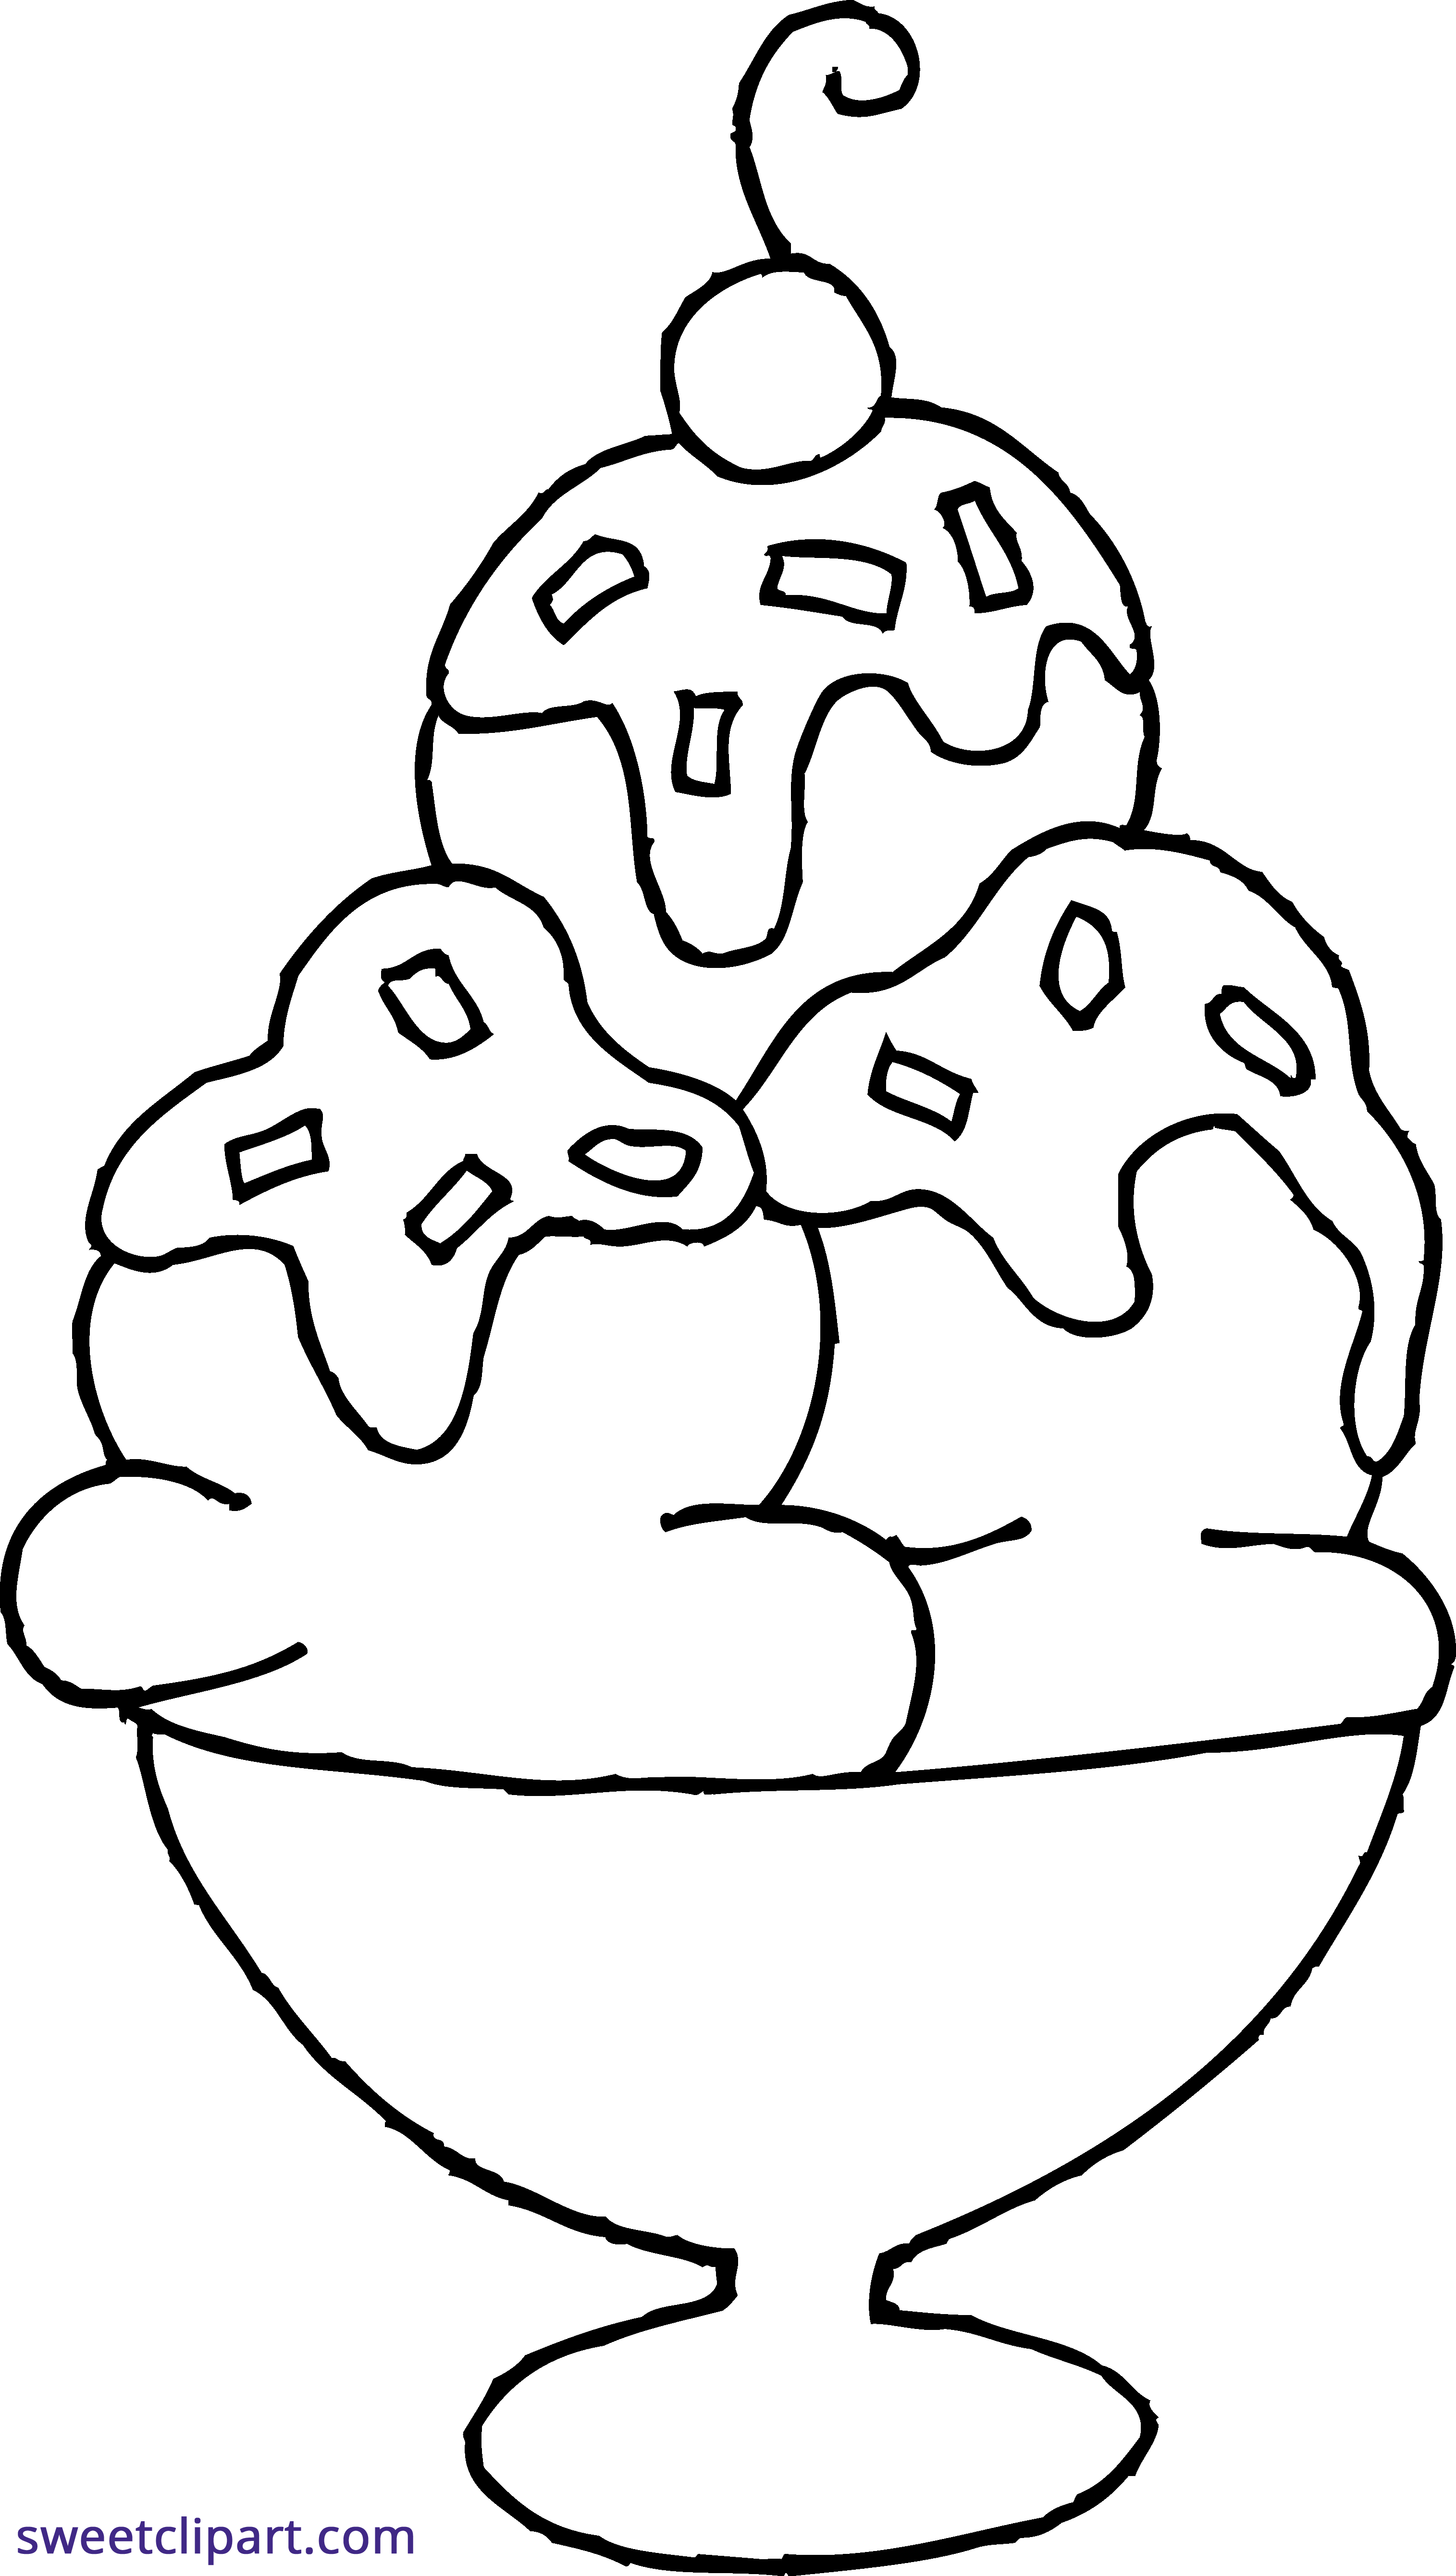 vector free stock Coloring page sweet clip. Ice cream sundae clipart black and white